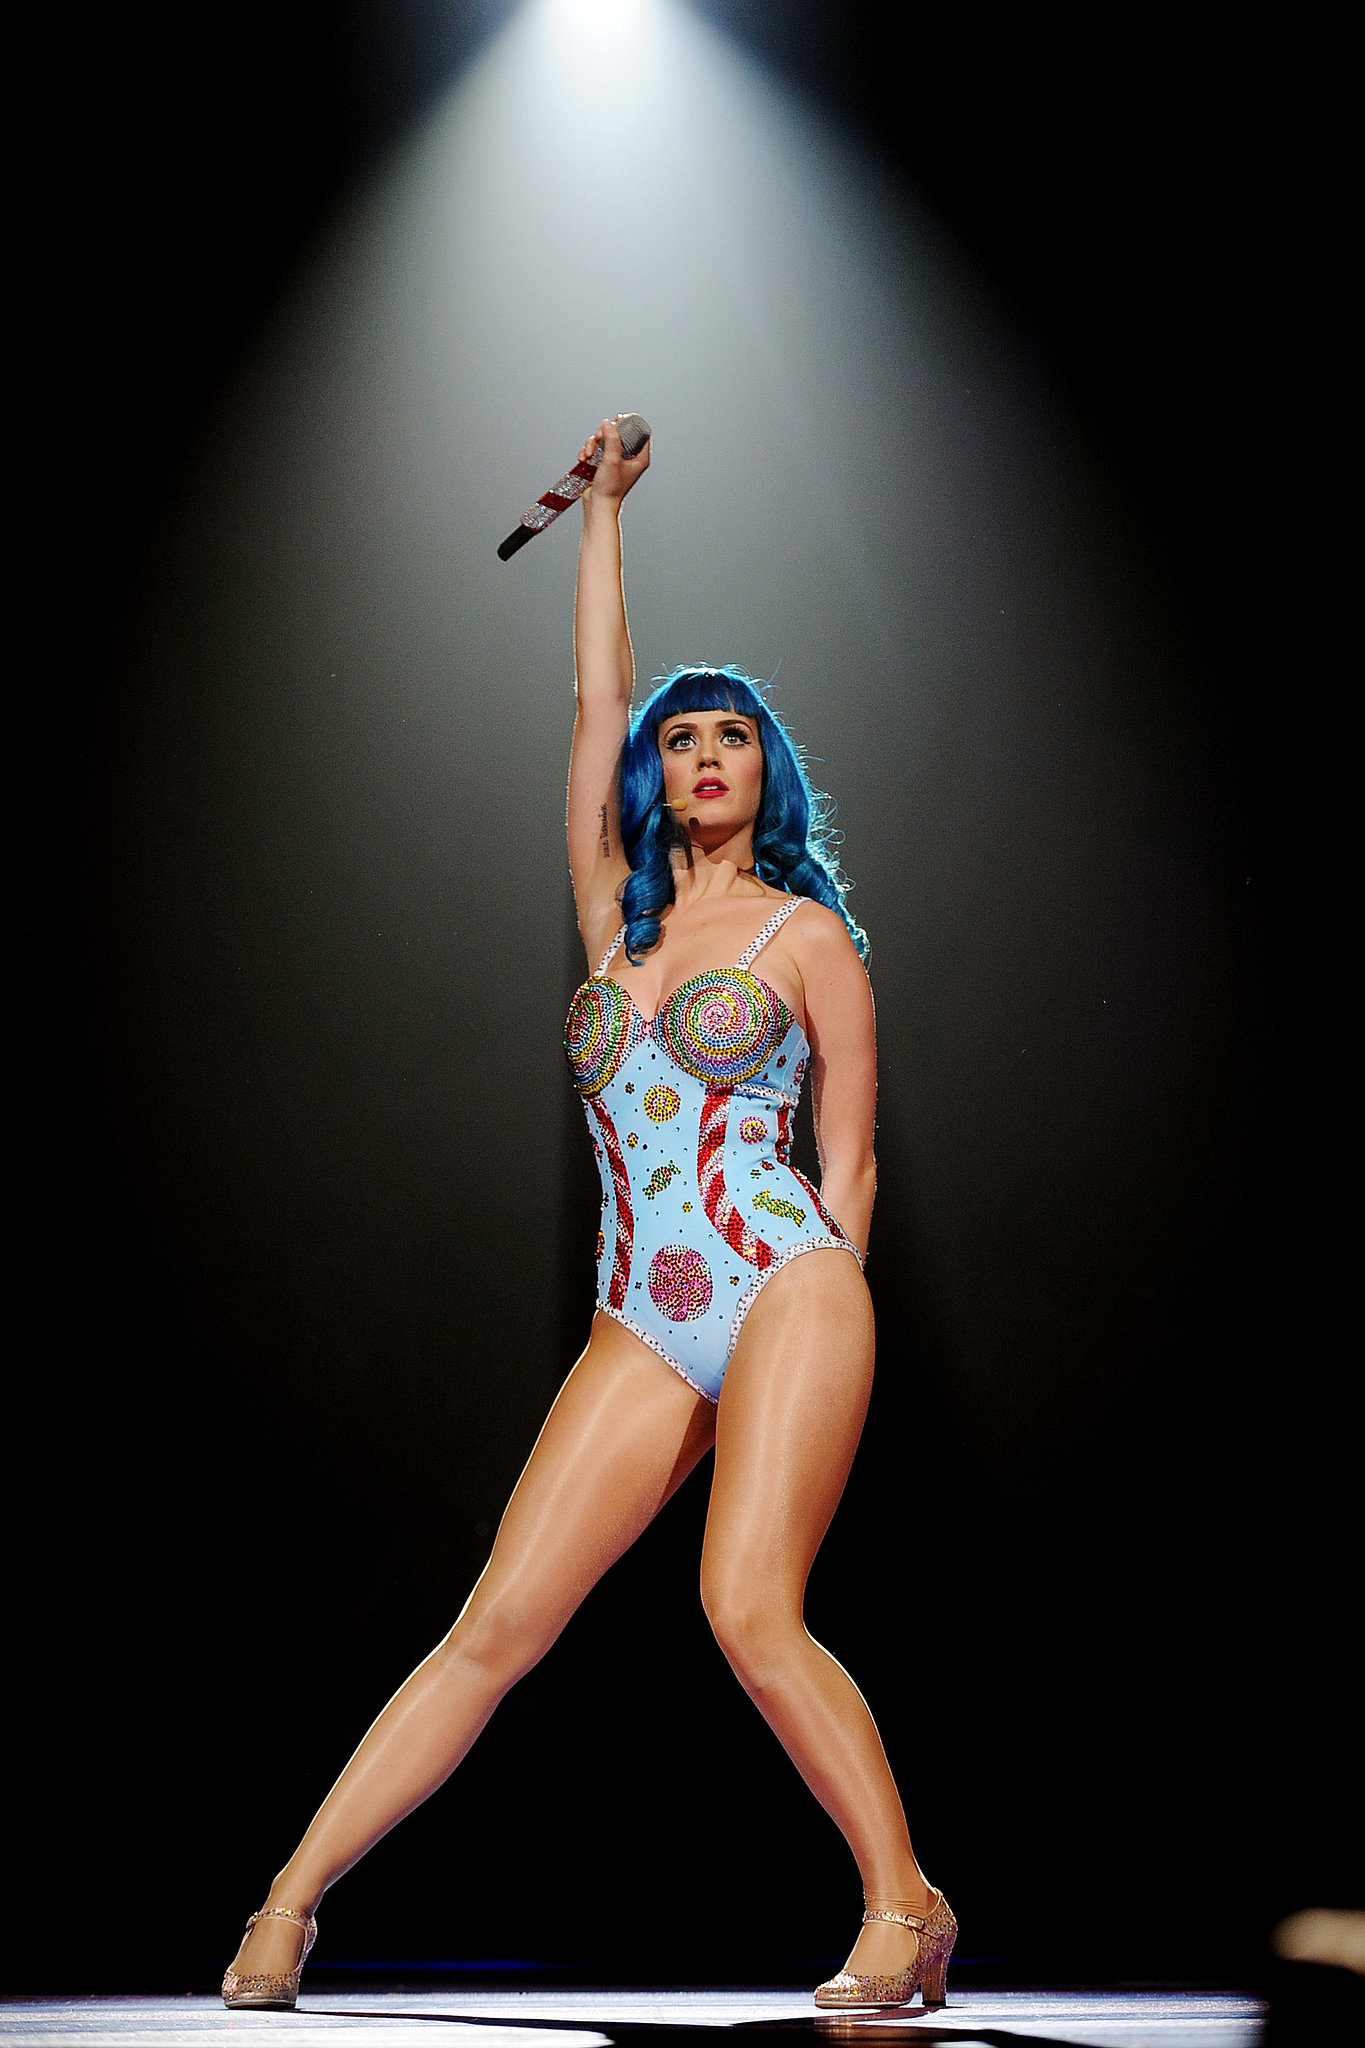 Katy showed off her toned legs in Sunrise, FL, while performing for her California Dreams tour in June 2011.